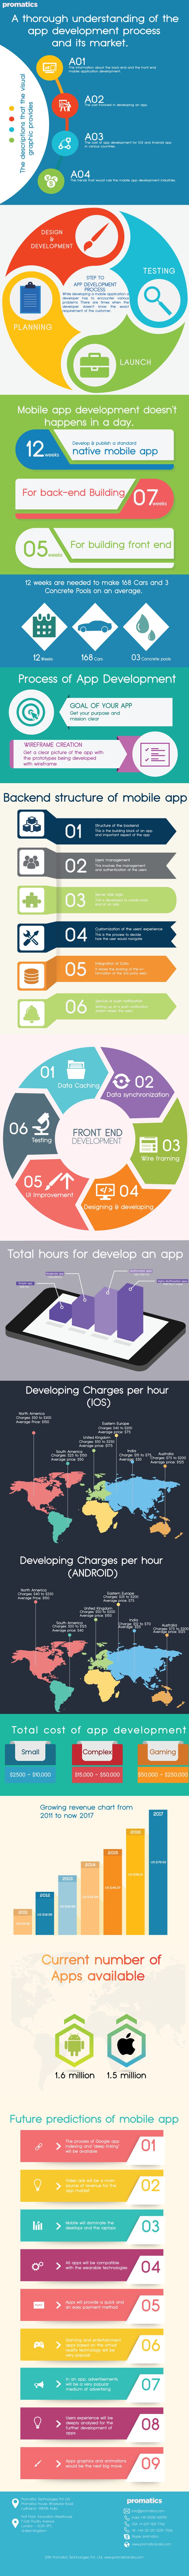 A thorough understanding of the #app #development process and its market